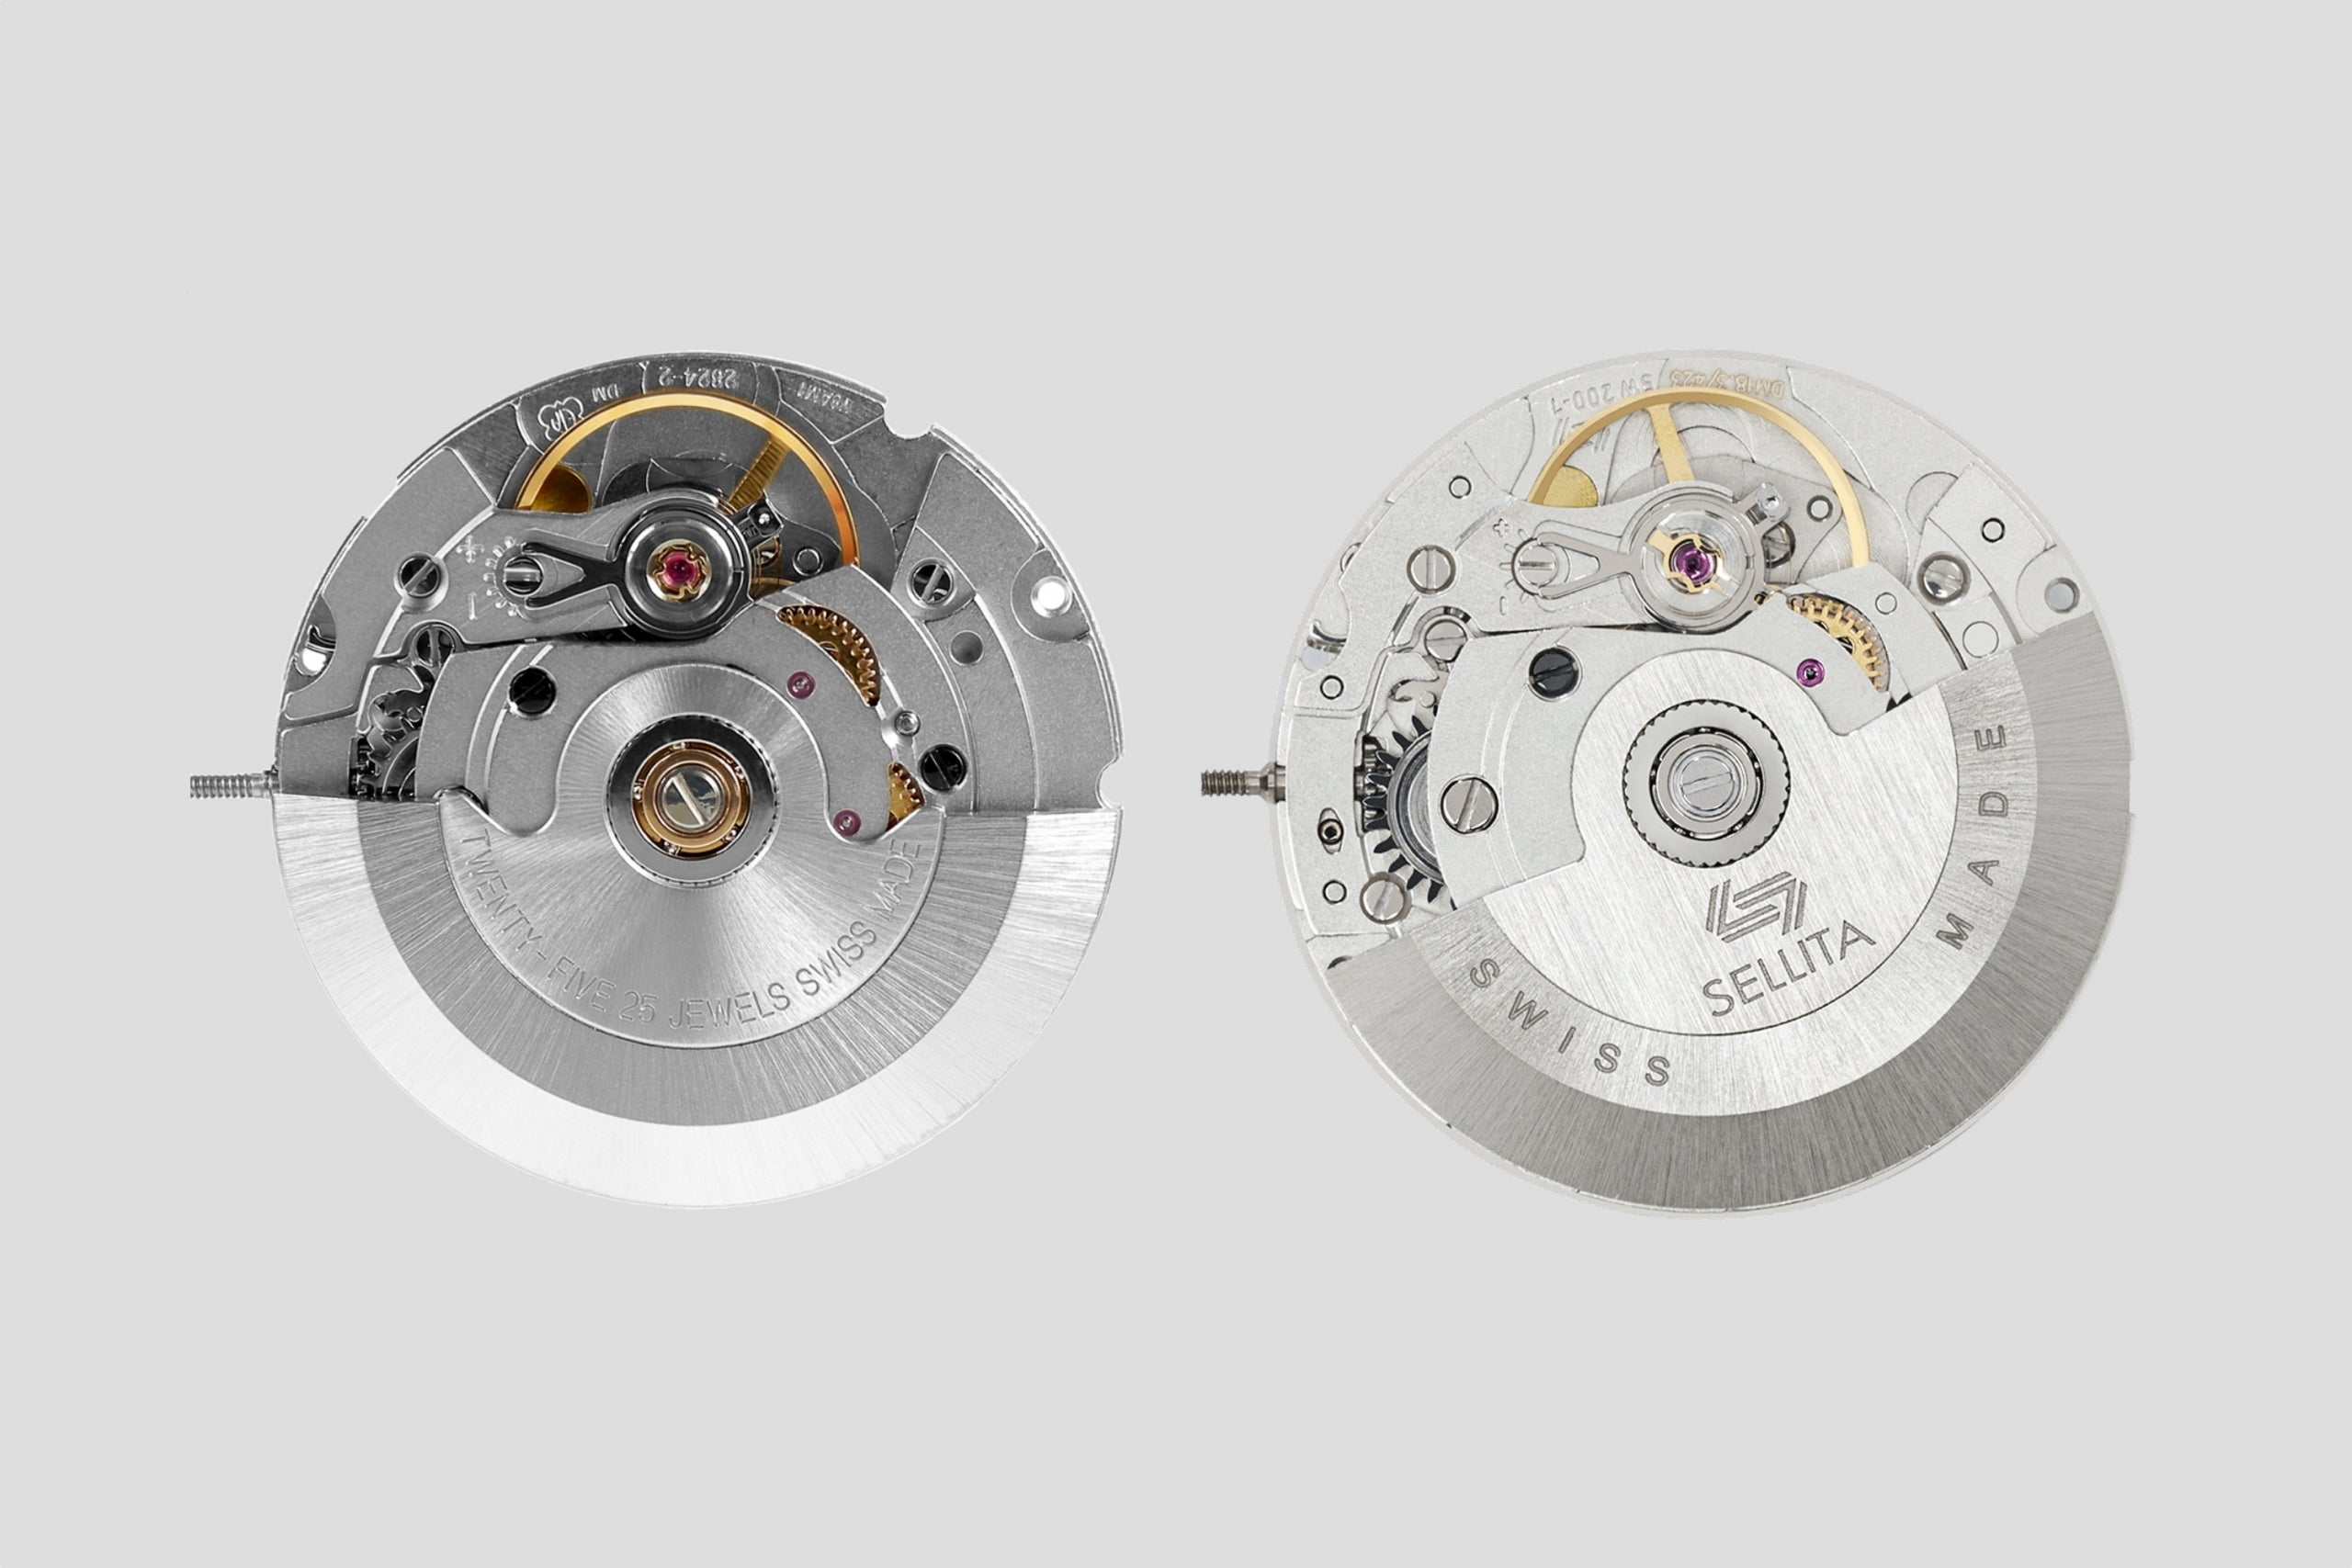 ETA 2824-2 and Sellita SW 200-7 watch movements in In-house or ébauche, and does it even matter anymore? For A Collected Man London